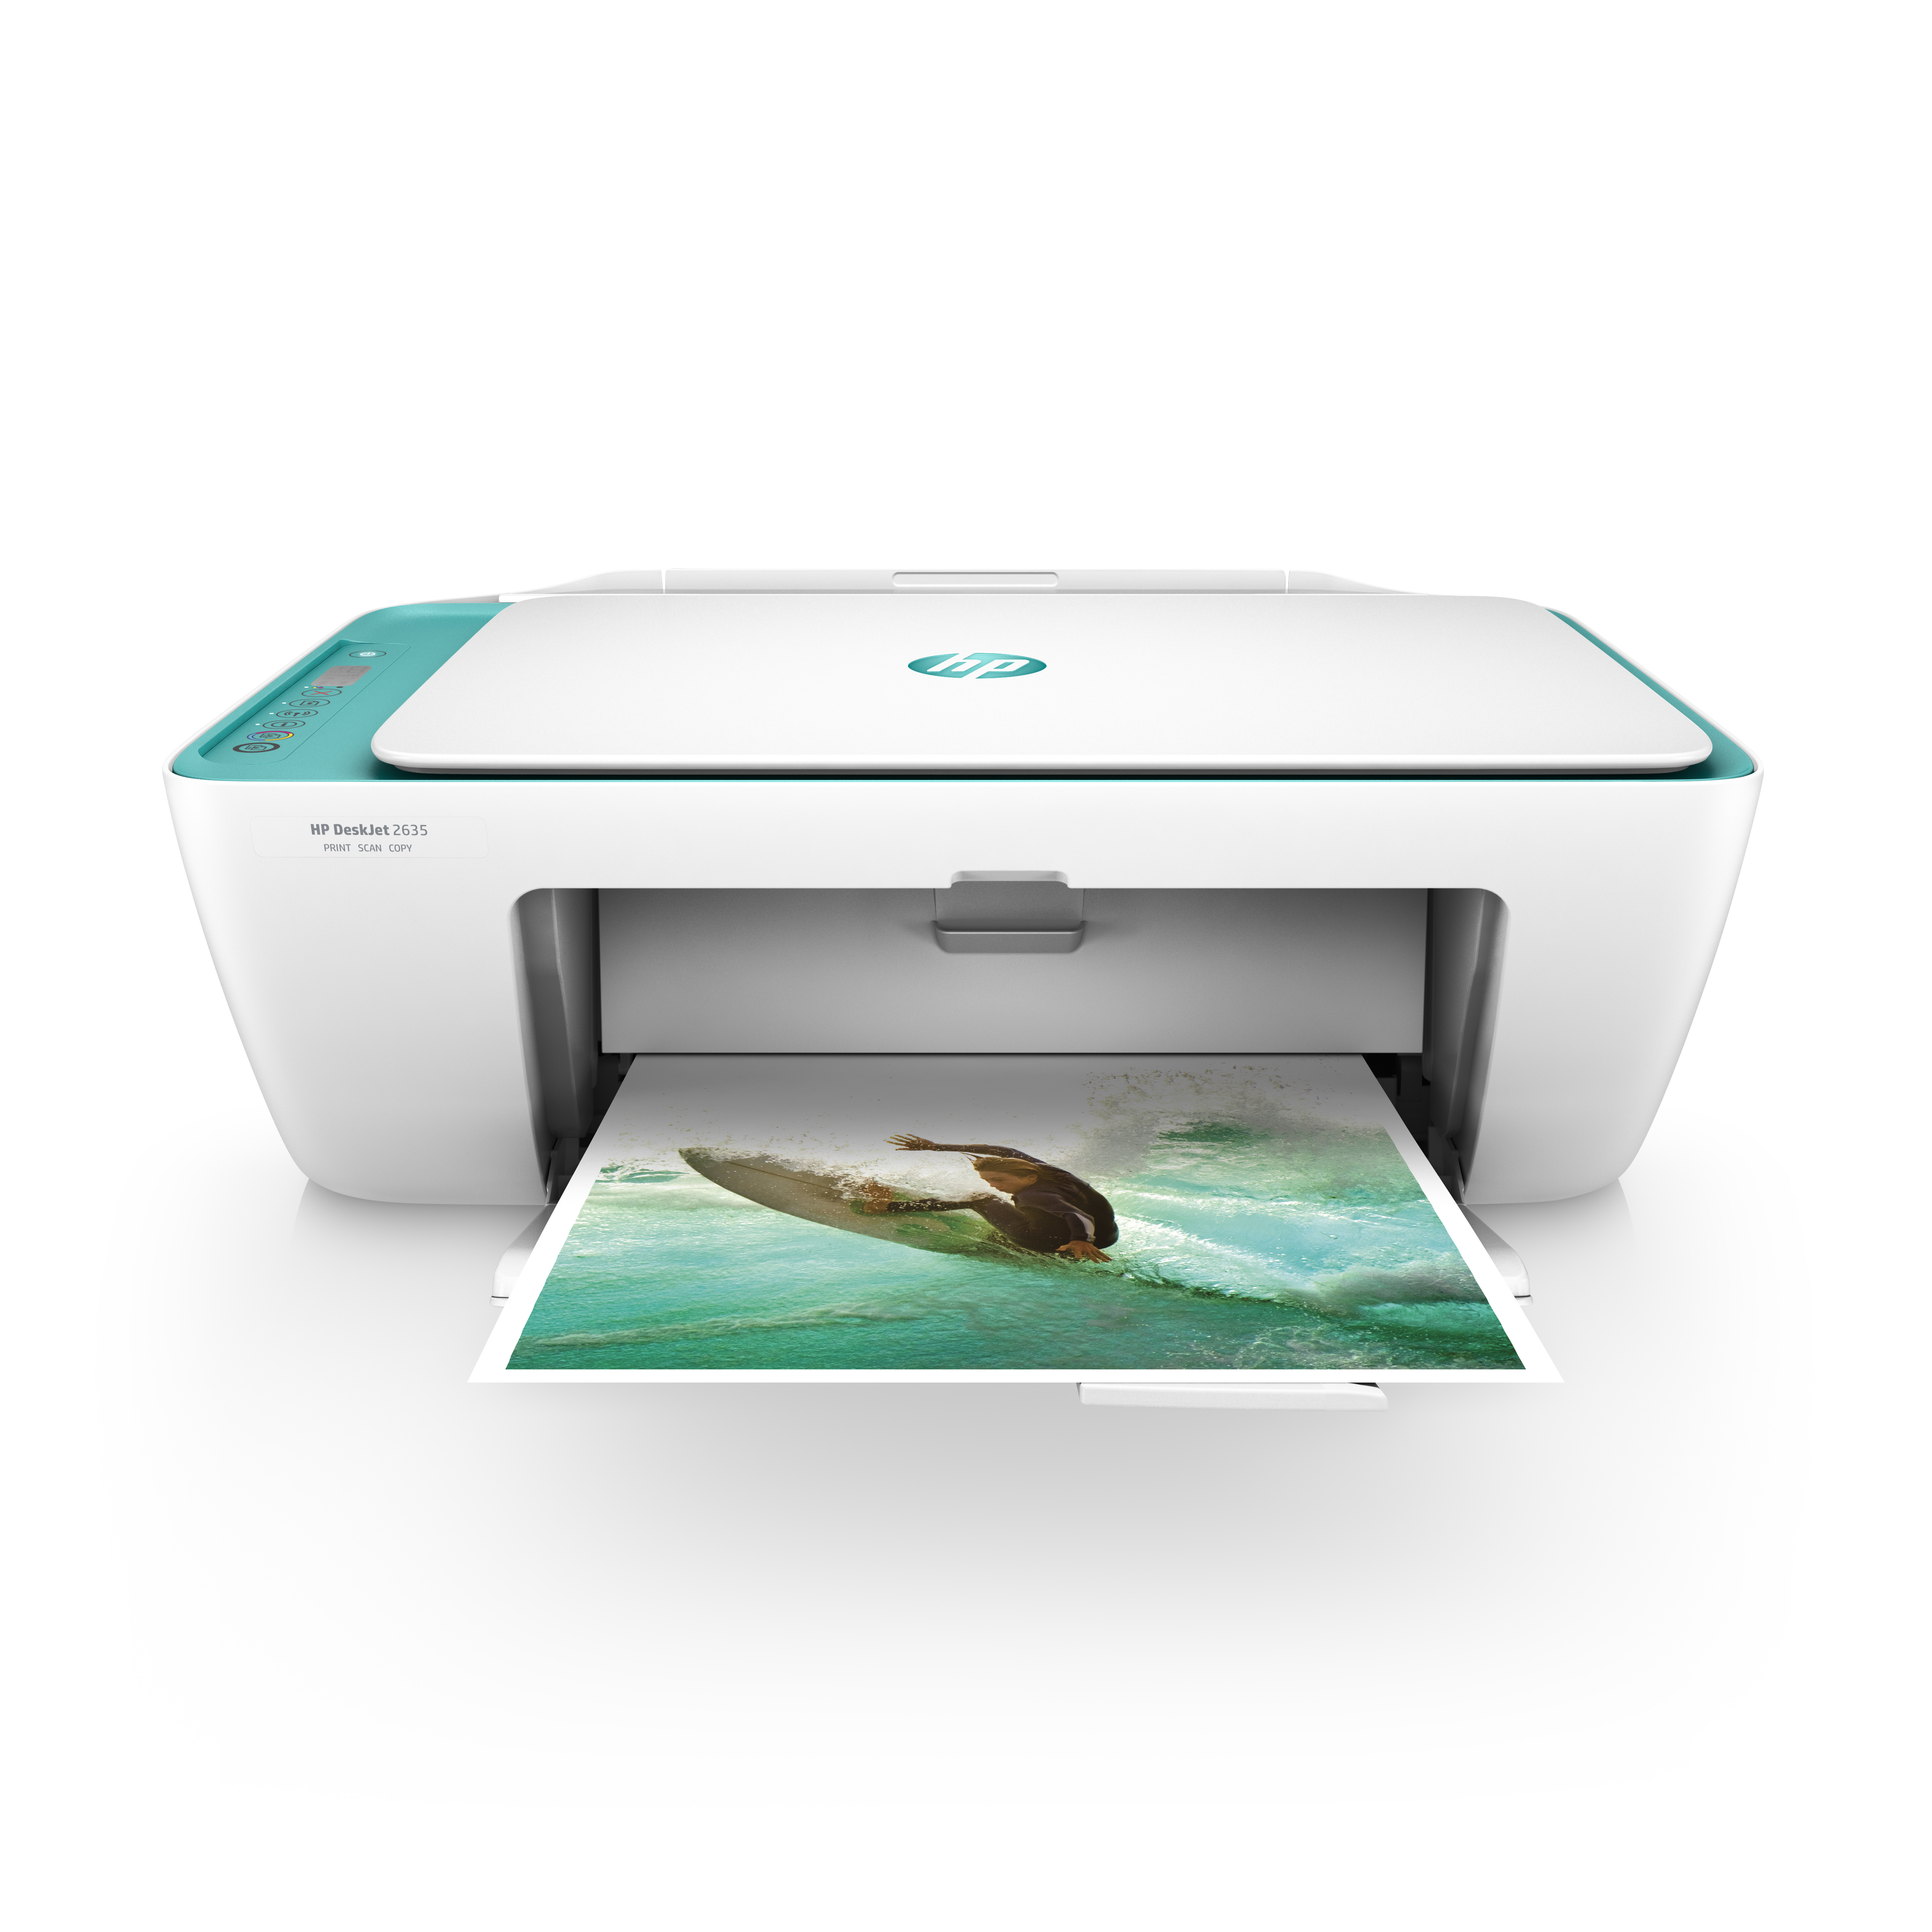 HP DeskJet 2635 All-in-One Printer Teal by HP